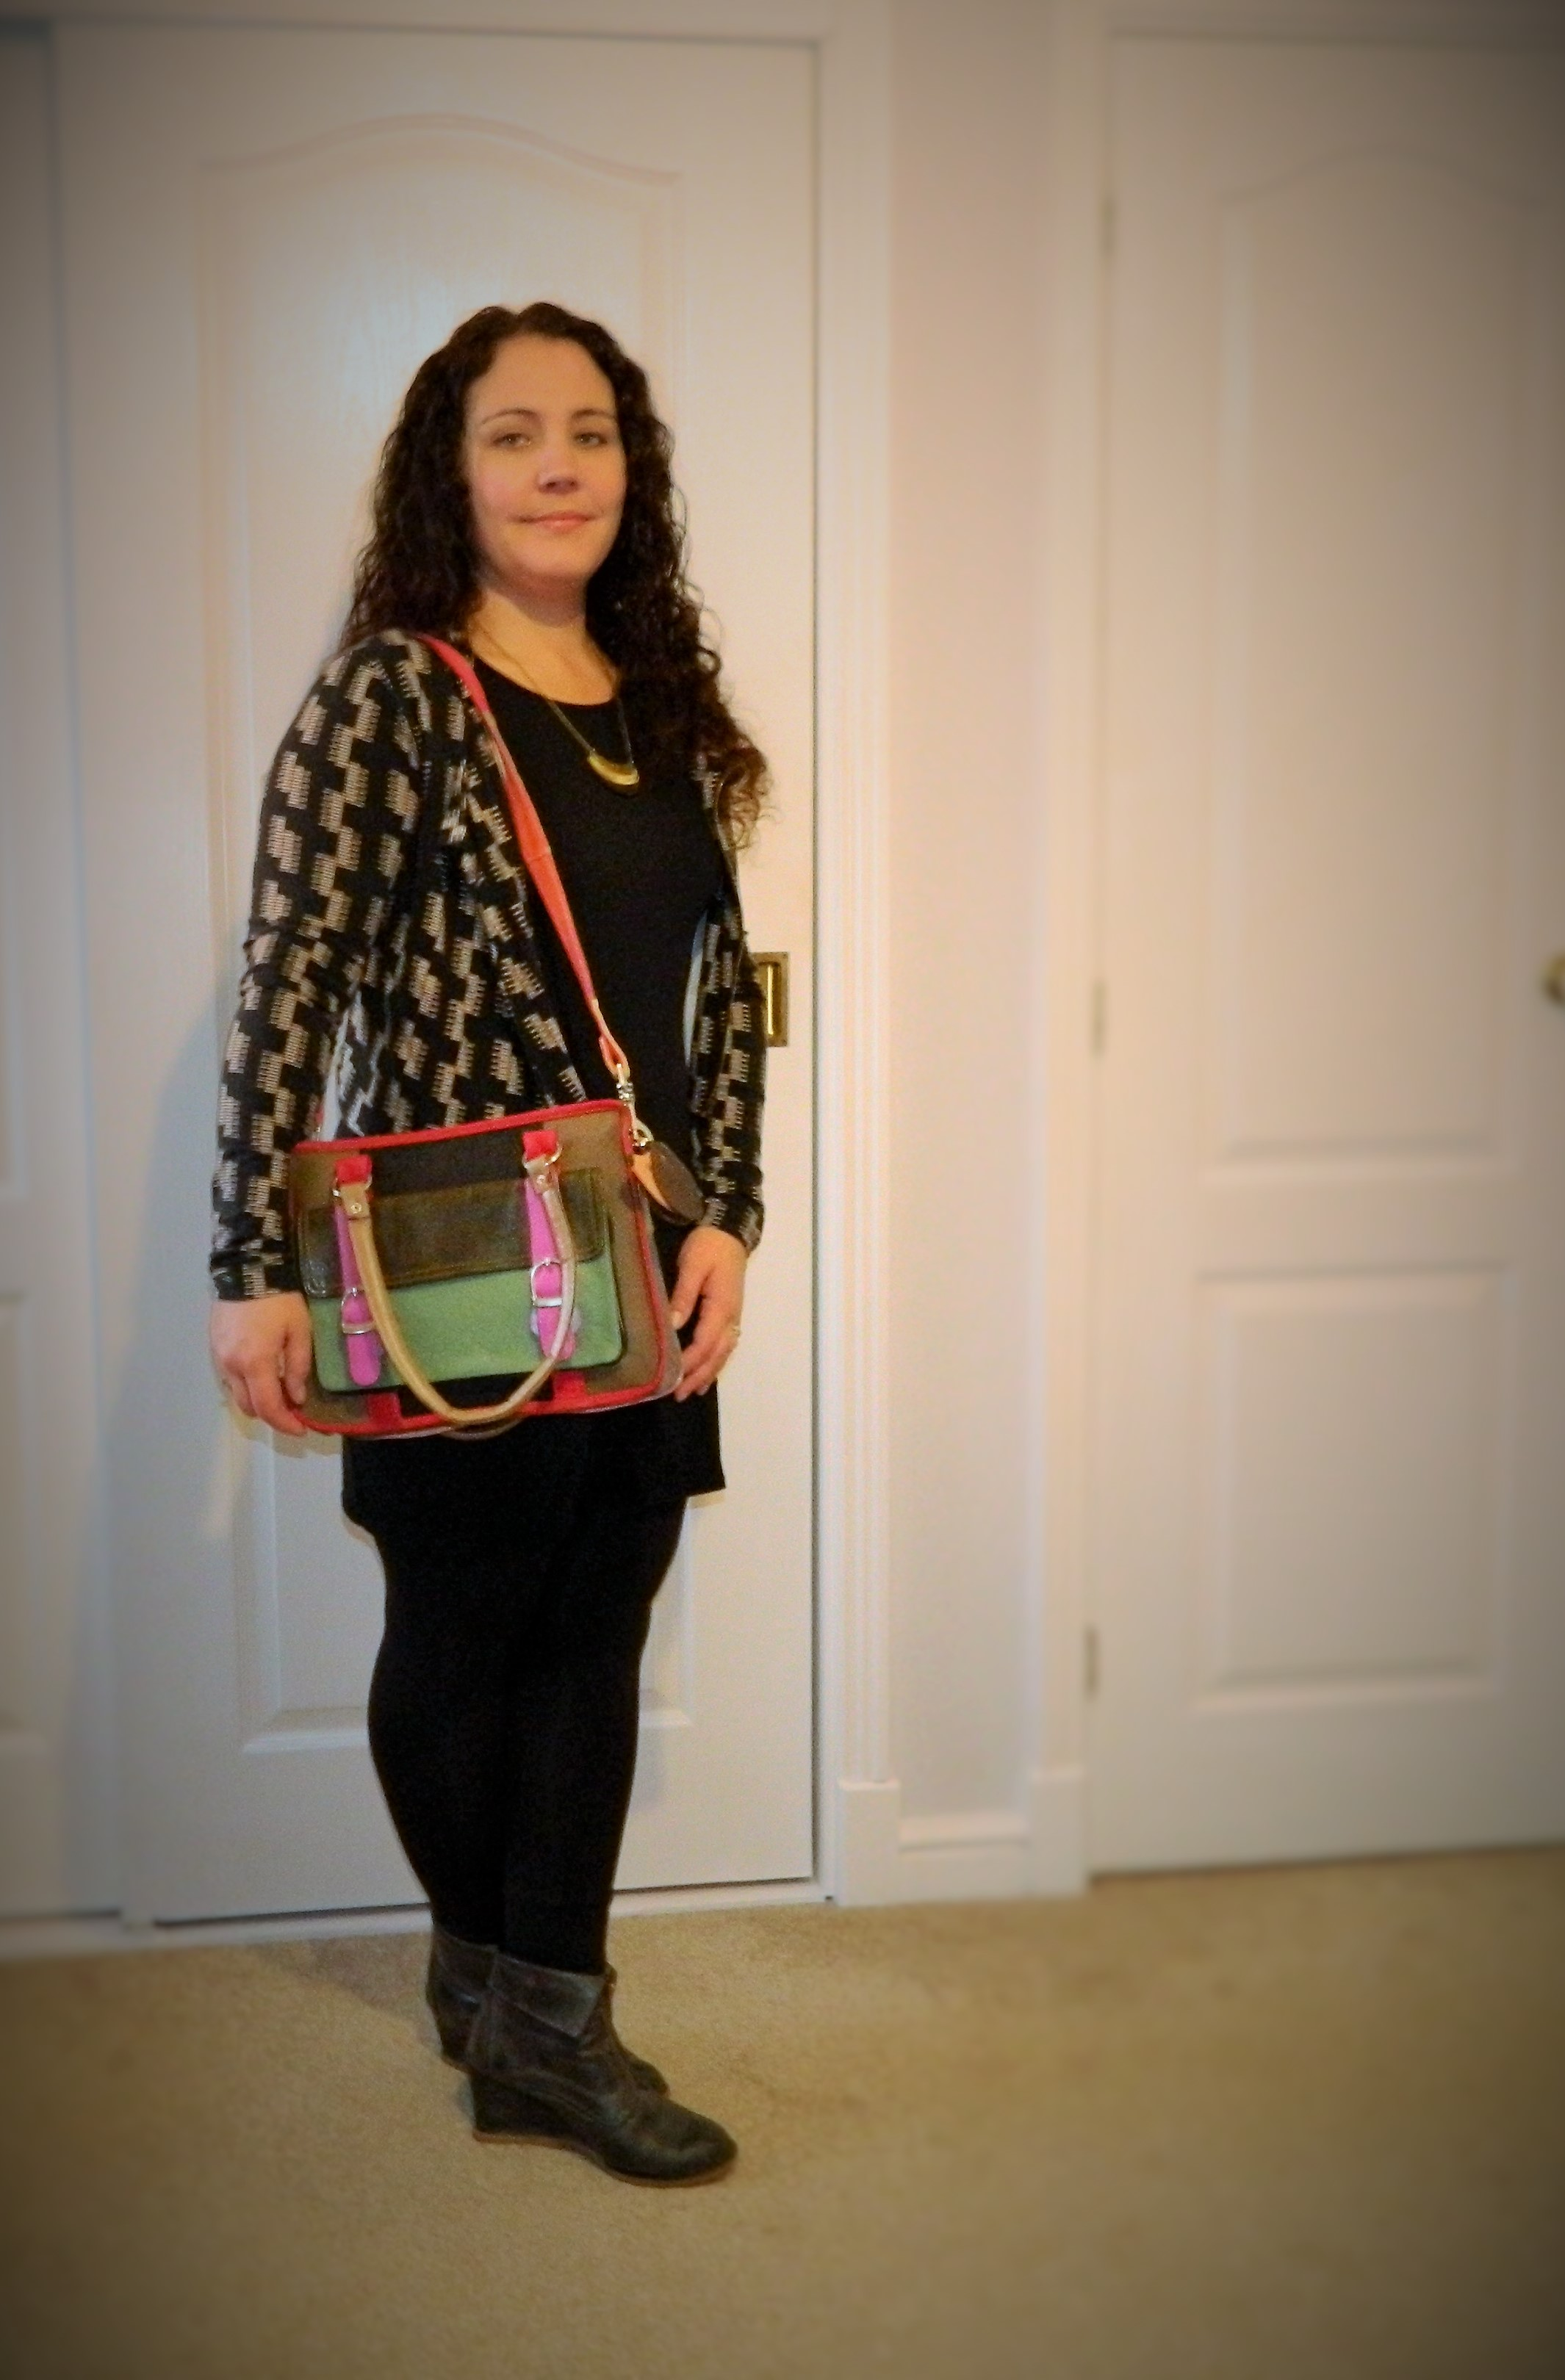 DSCN4777 2 Ethical Leather Bag Review: What Daisy Did